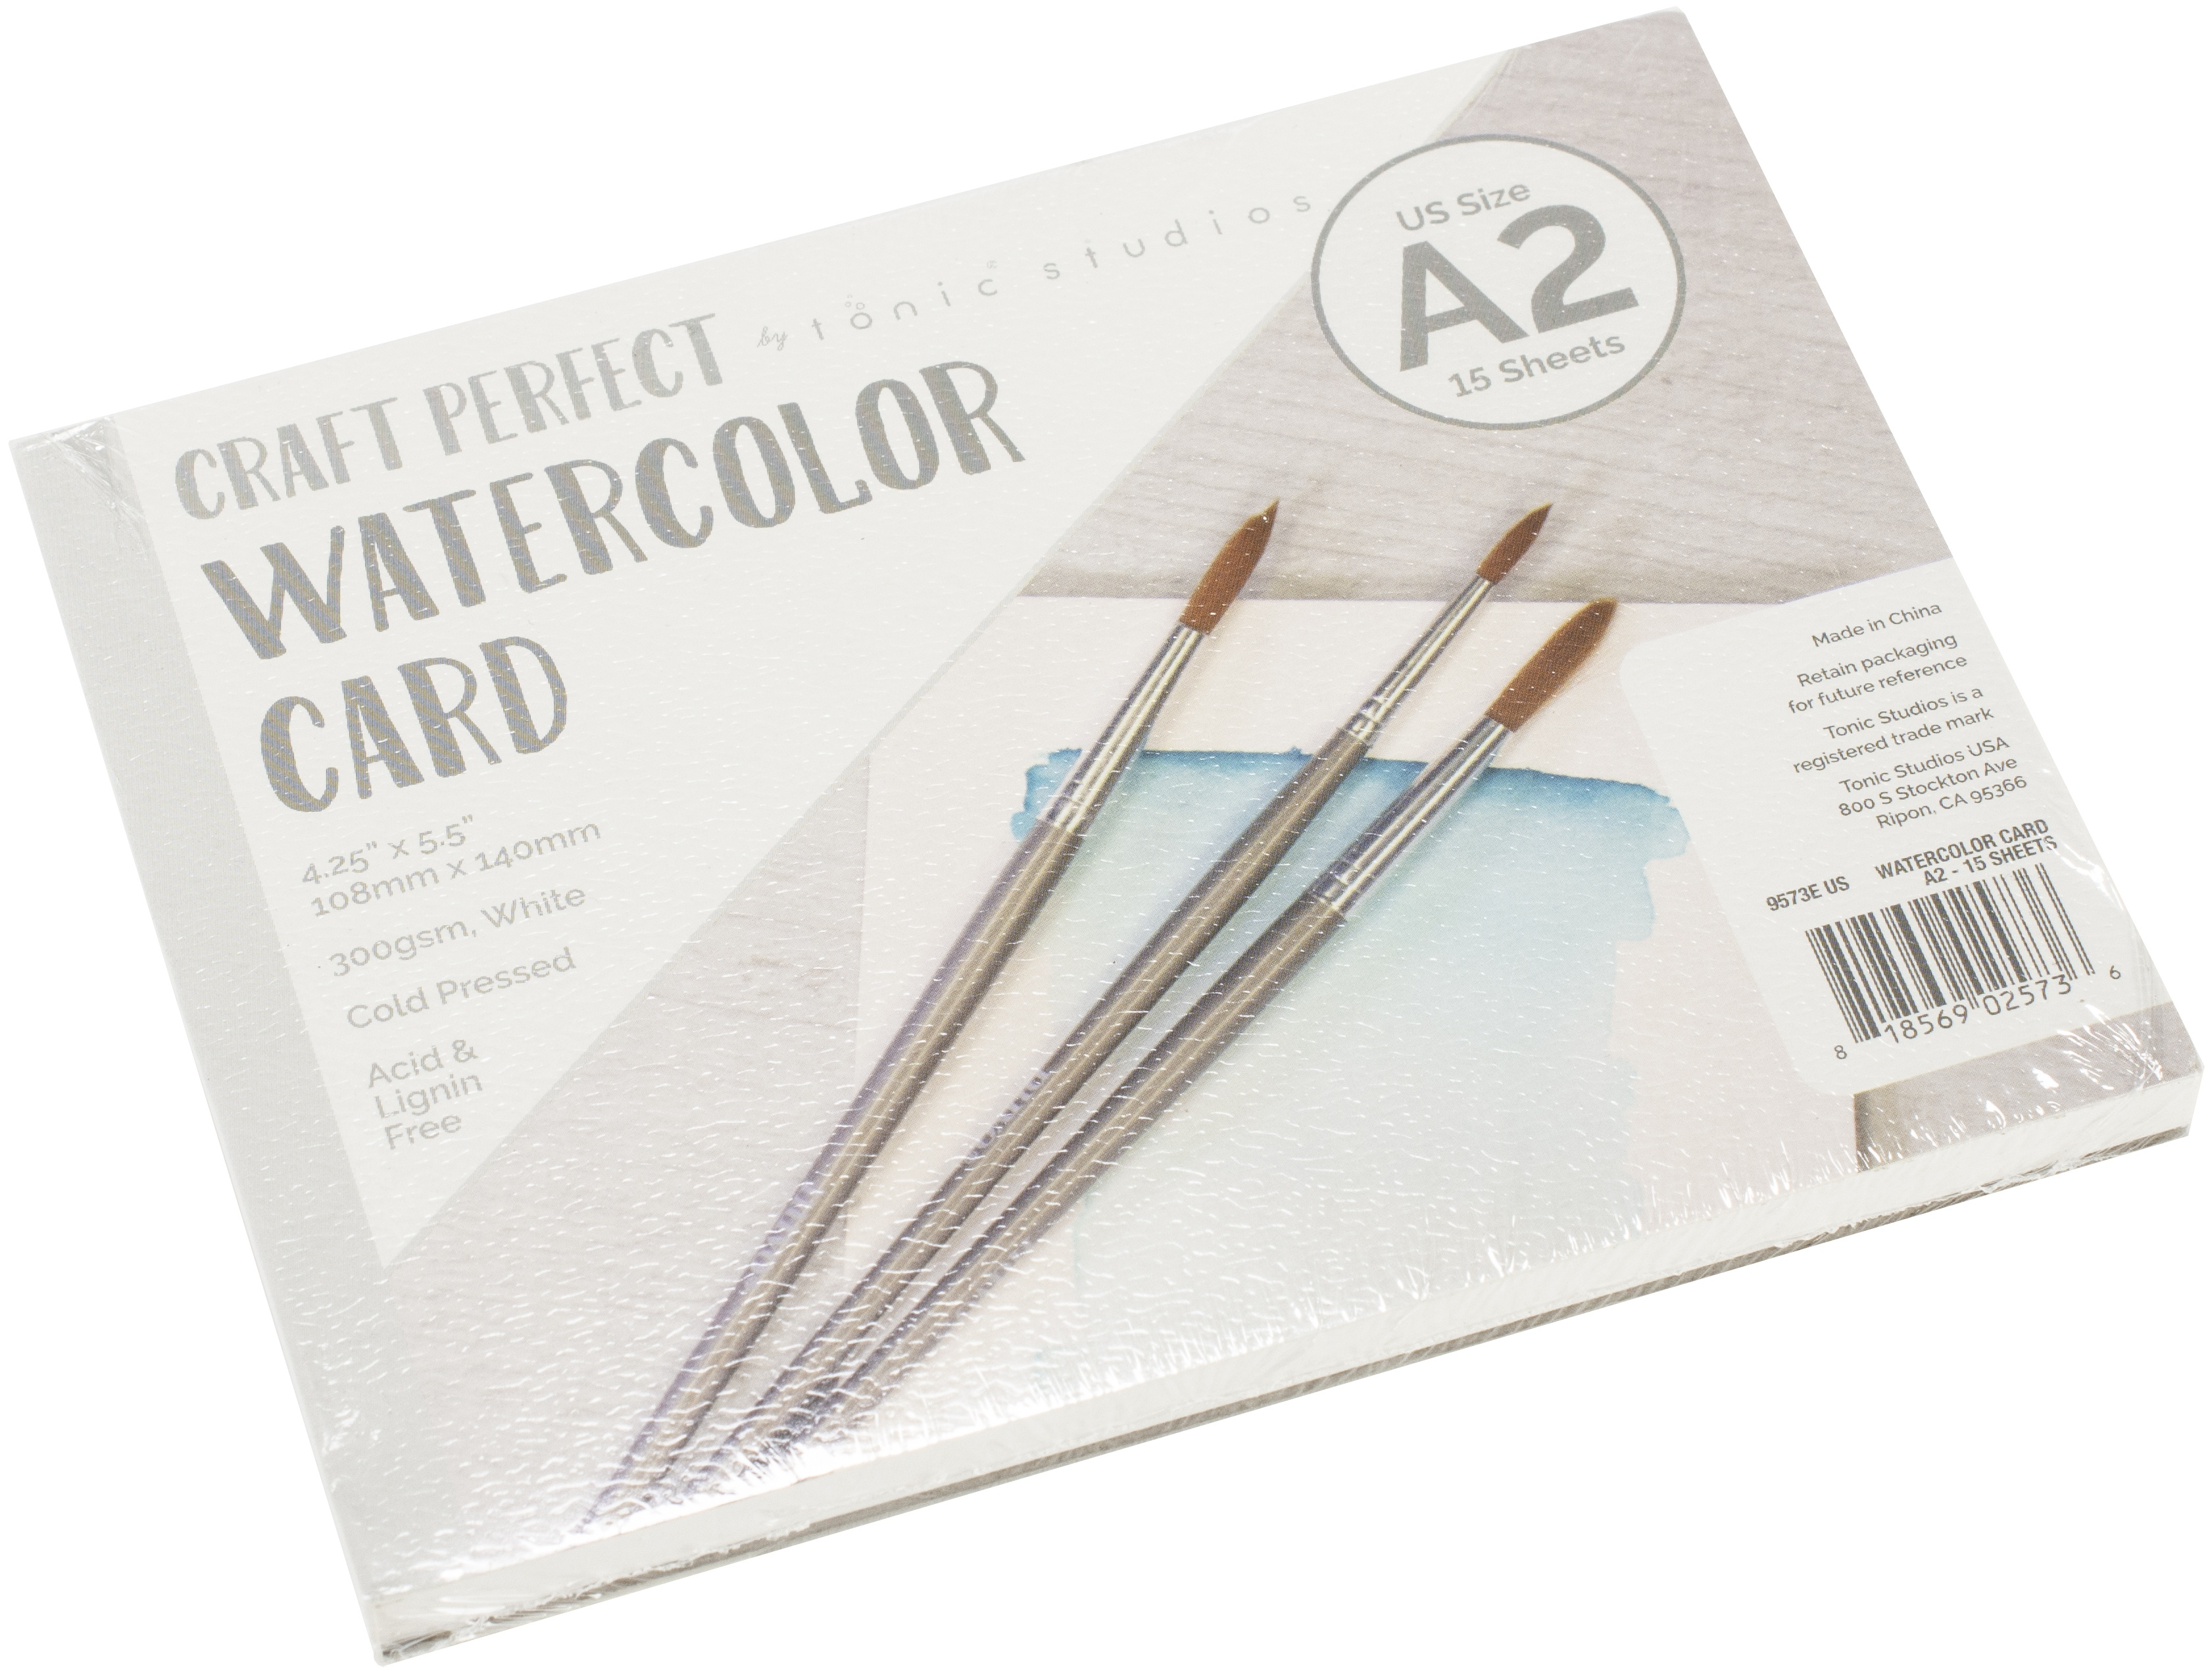 Craft Perfect - Watercolor Card Paper Pad 4.25x5.5